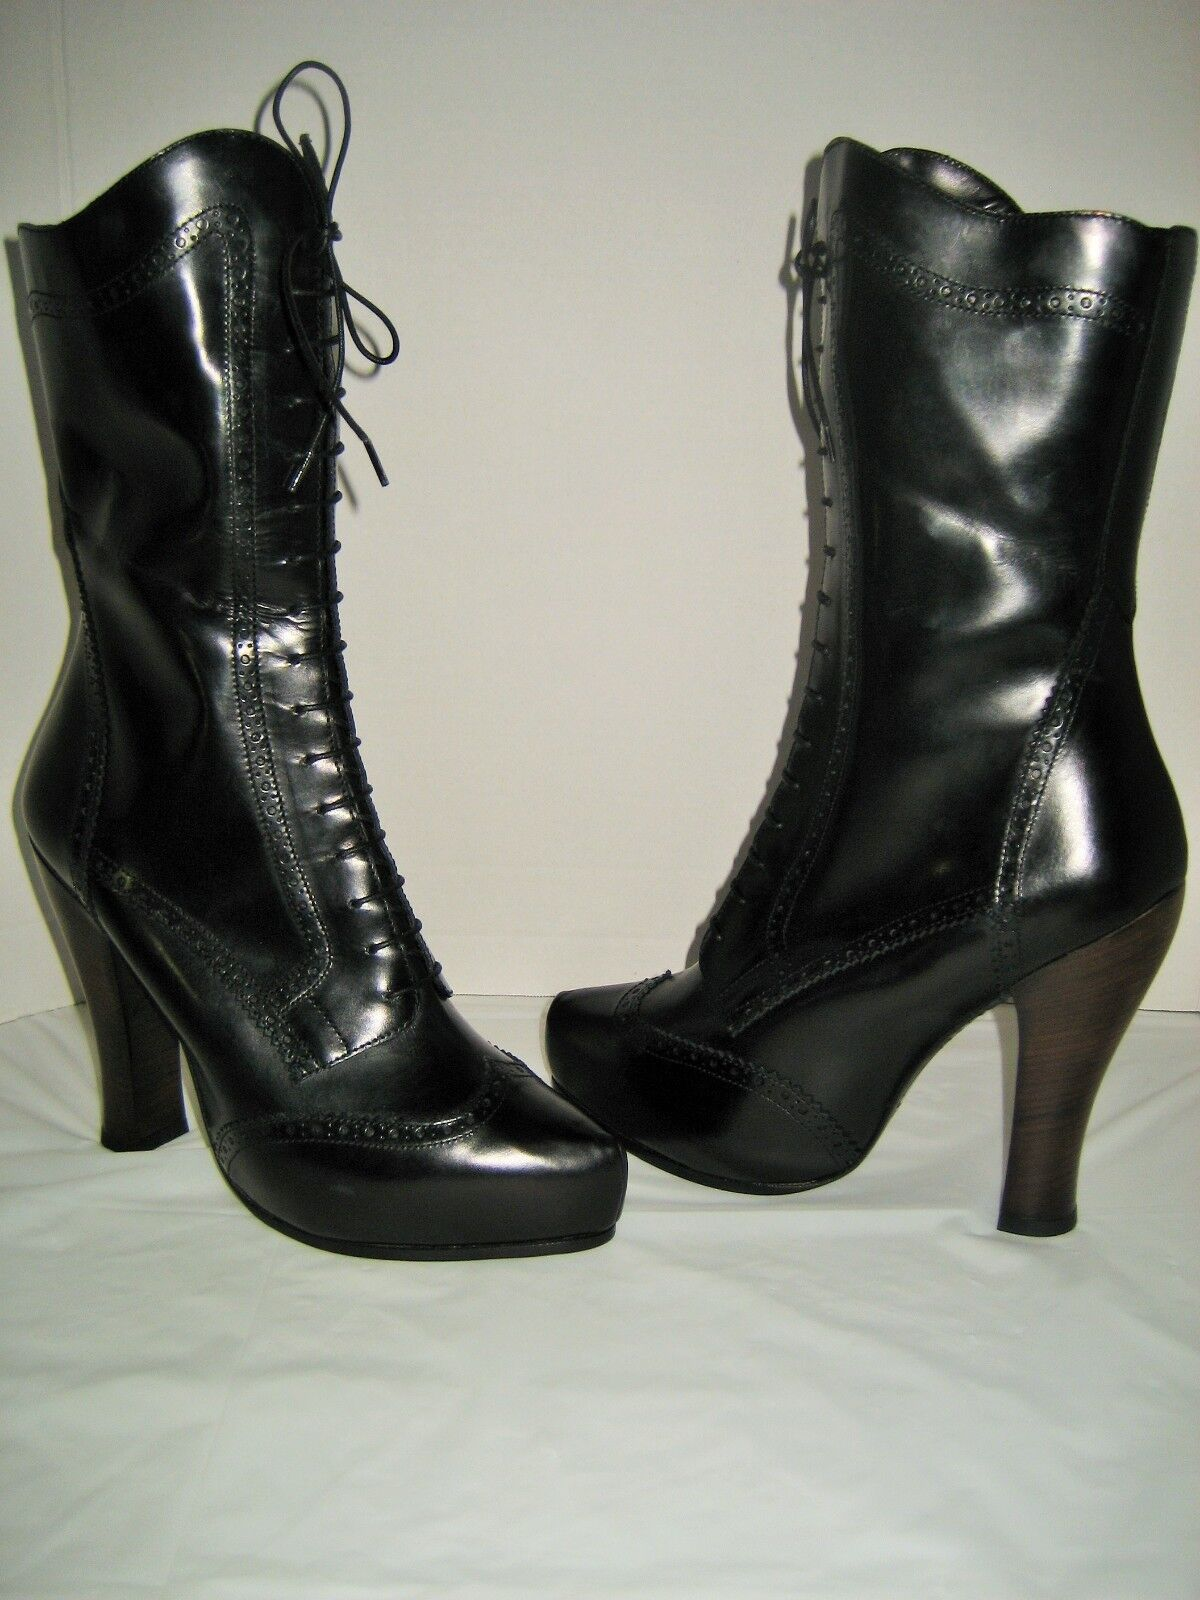 NEW Women Marc Jacobs Lace Up Side Zip Boots US 10 Black Leather High Heel